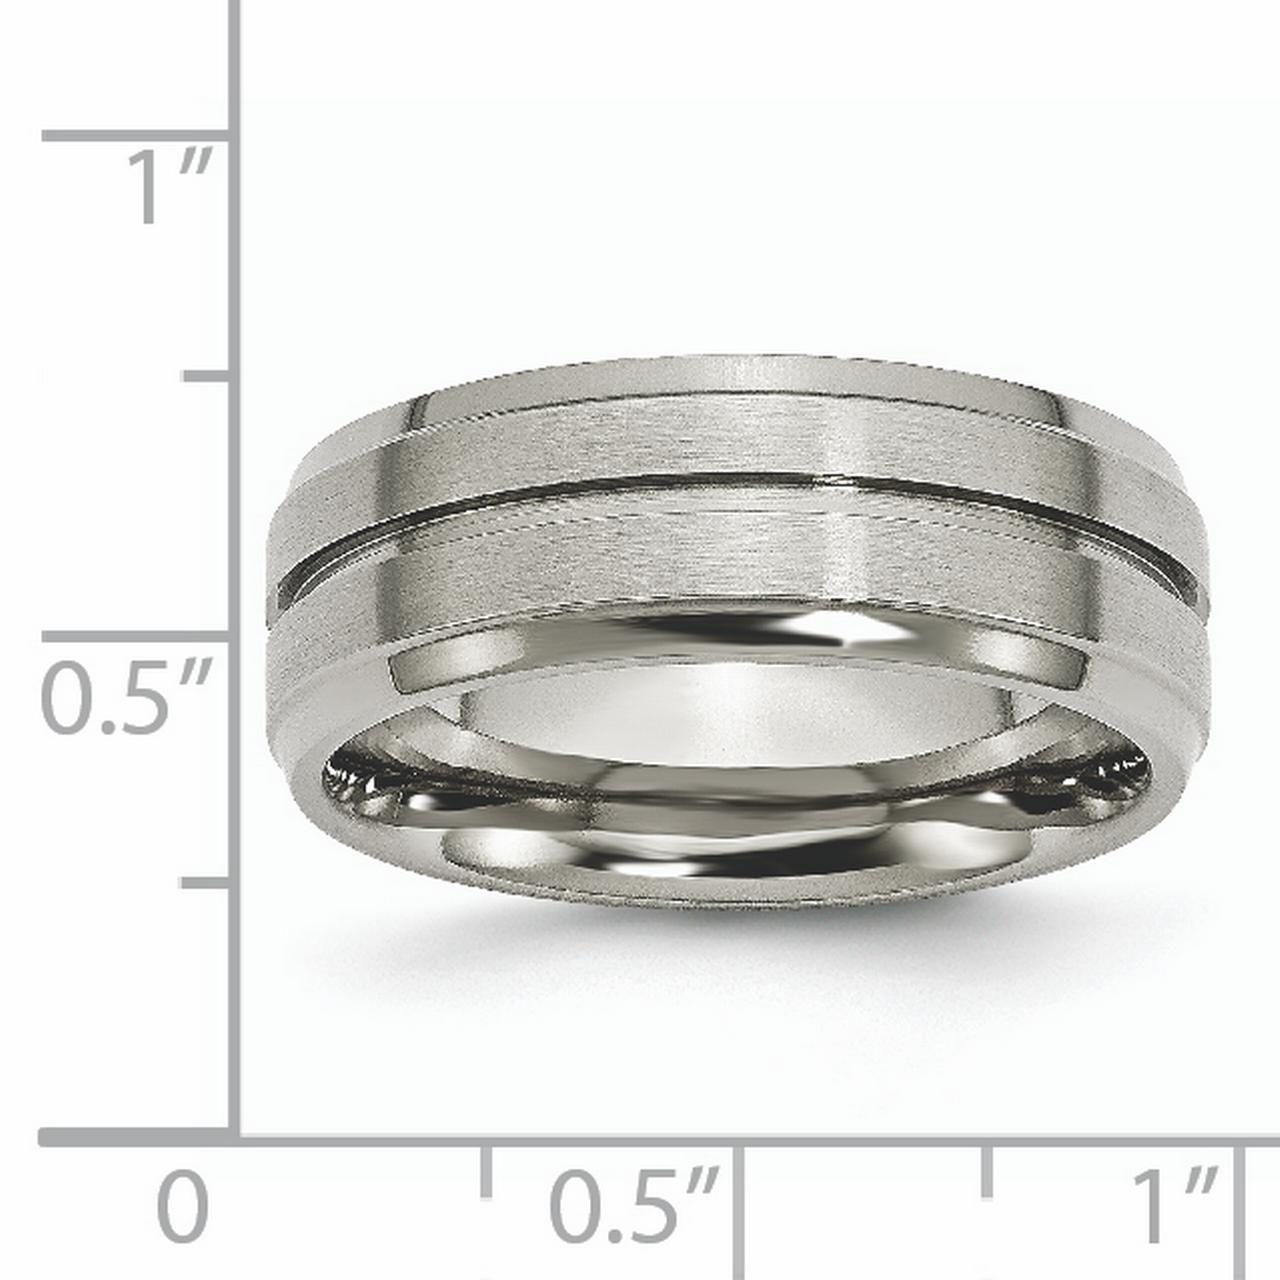 Titanium Grooved Ridged Edge 8mm Brushed Wedding Ring Band Size 14.00 Fashion Jewelry Gifts For Women For Her - image 2 de 6